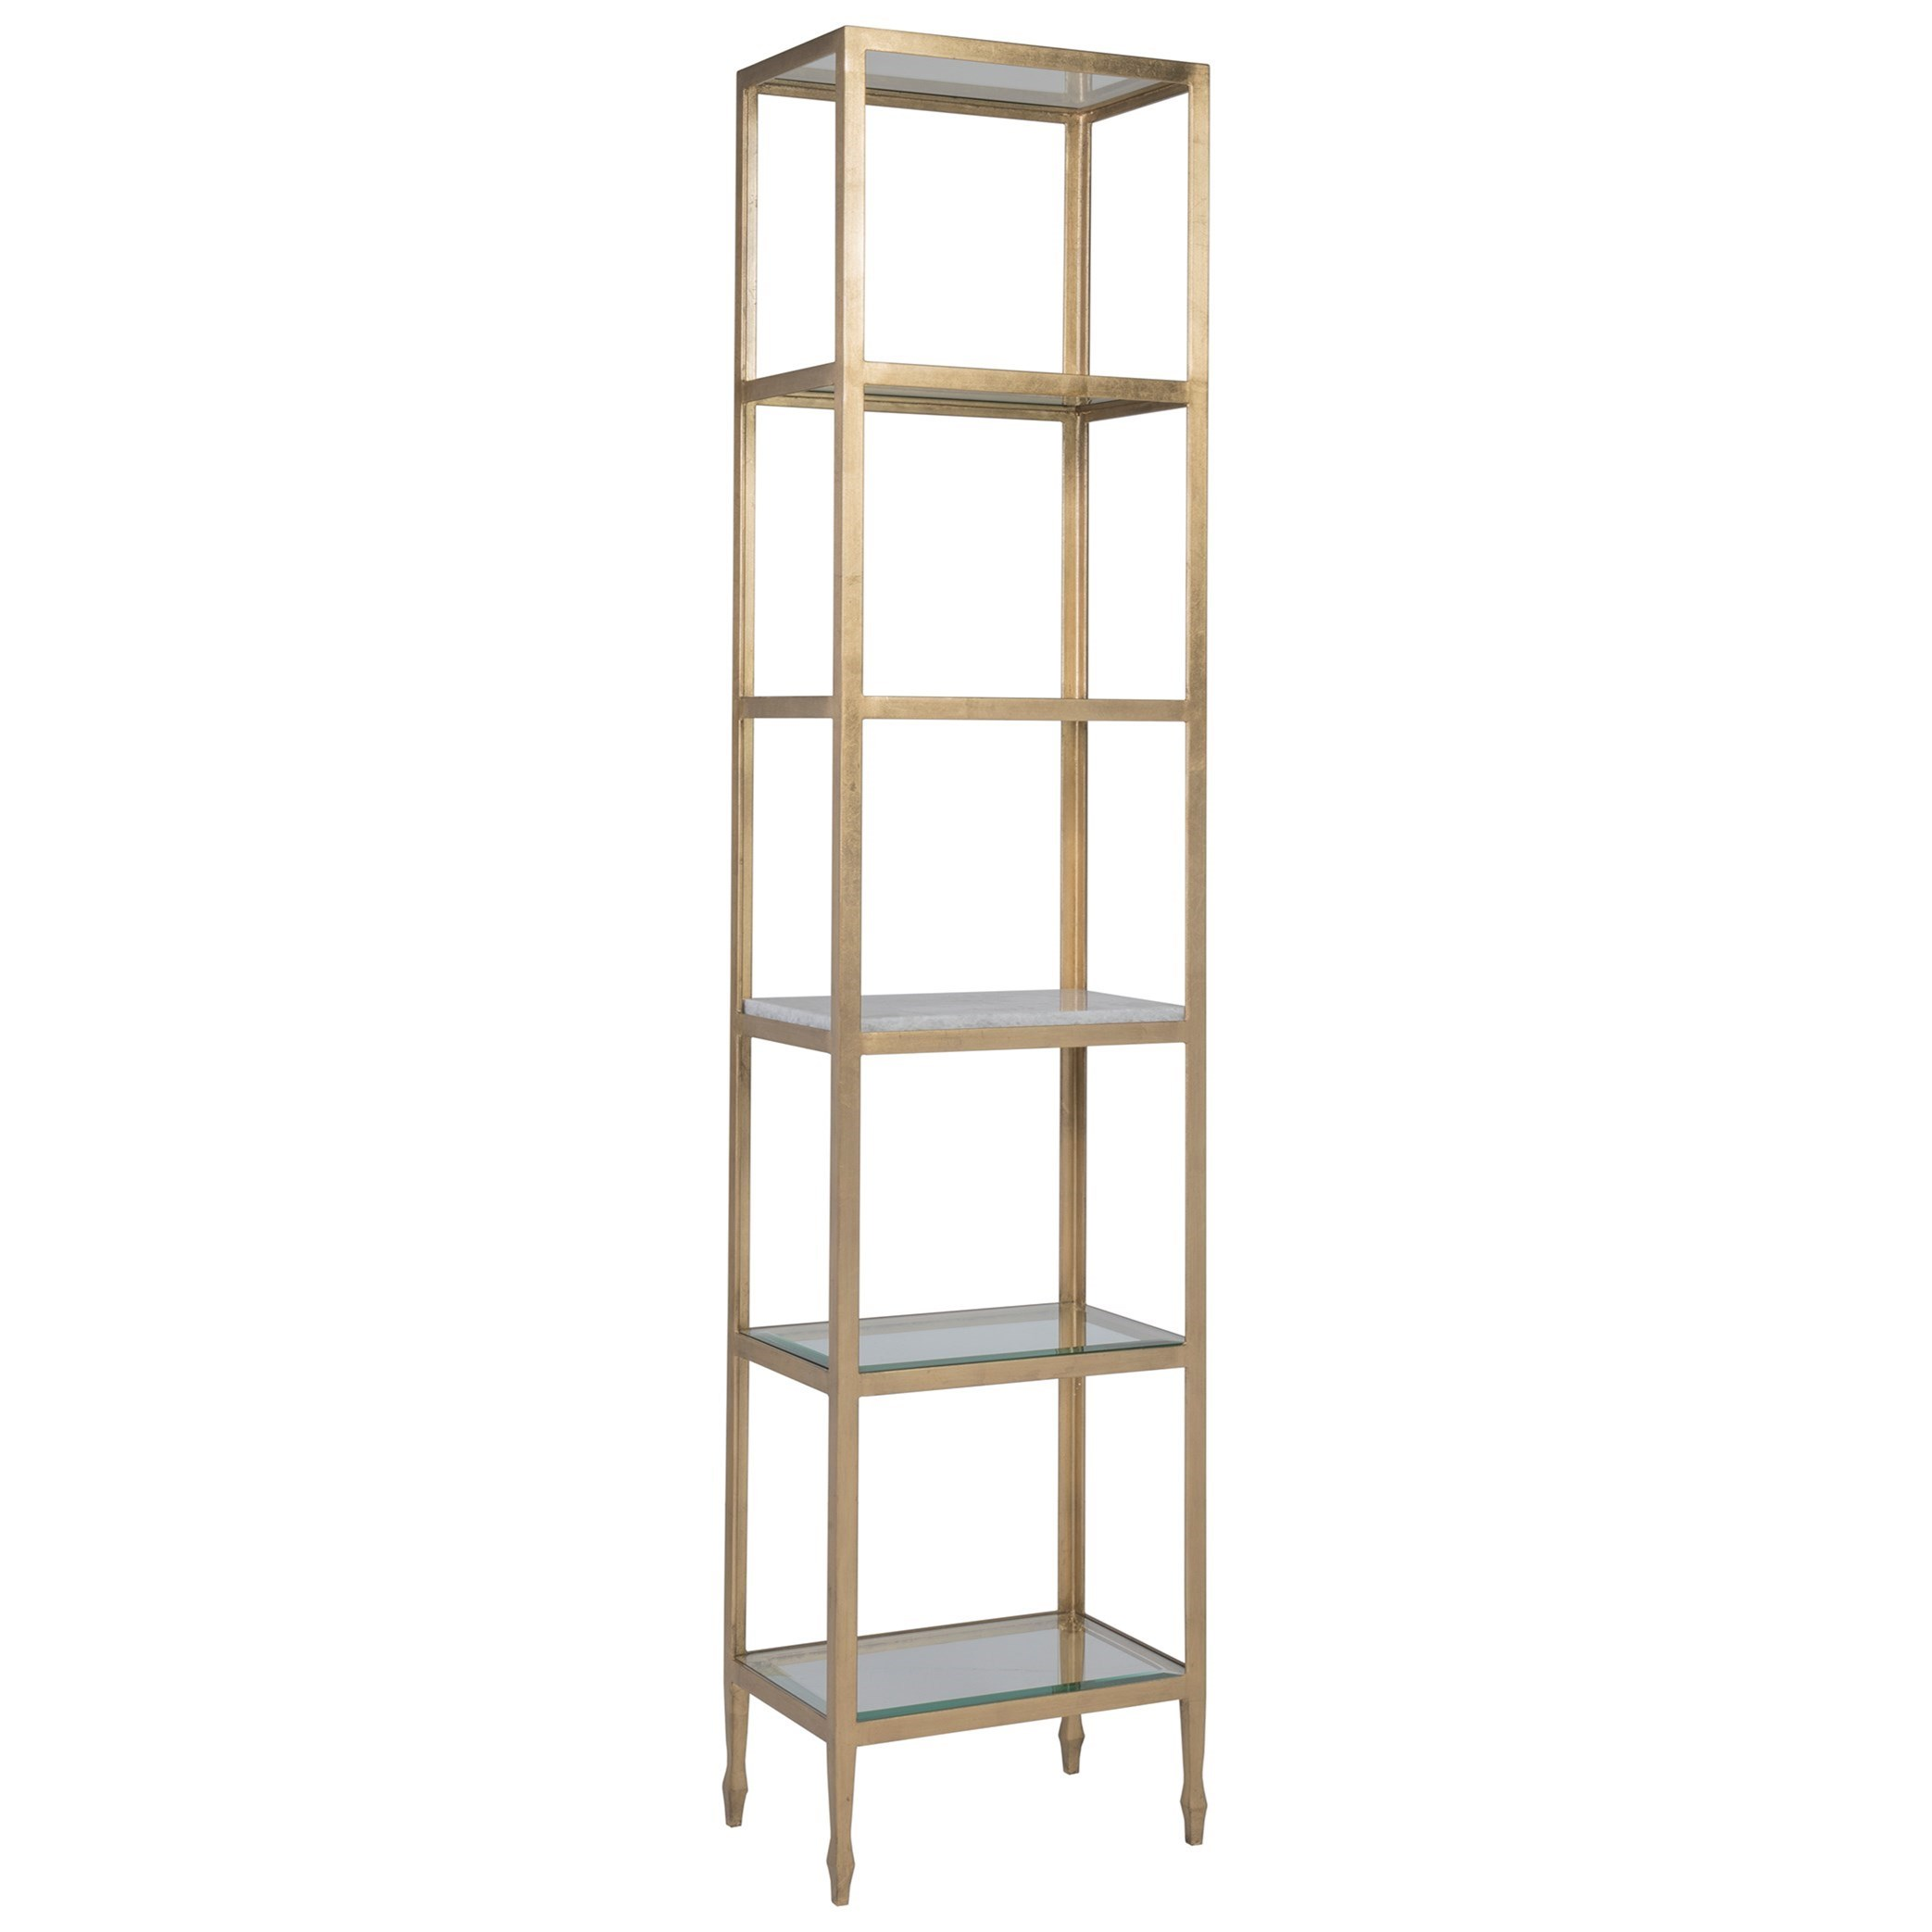 Sashay Slim Etagere by Artistica at Alison Craig Home Furnishings